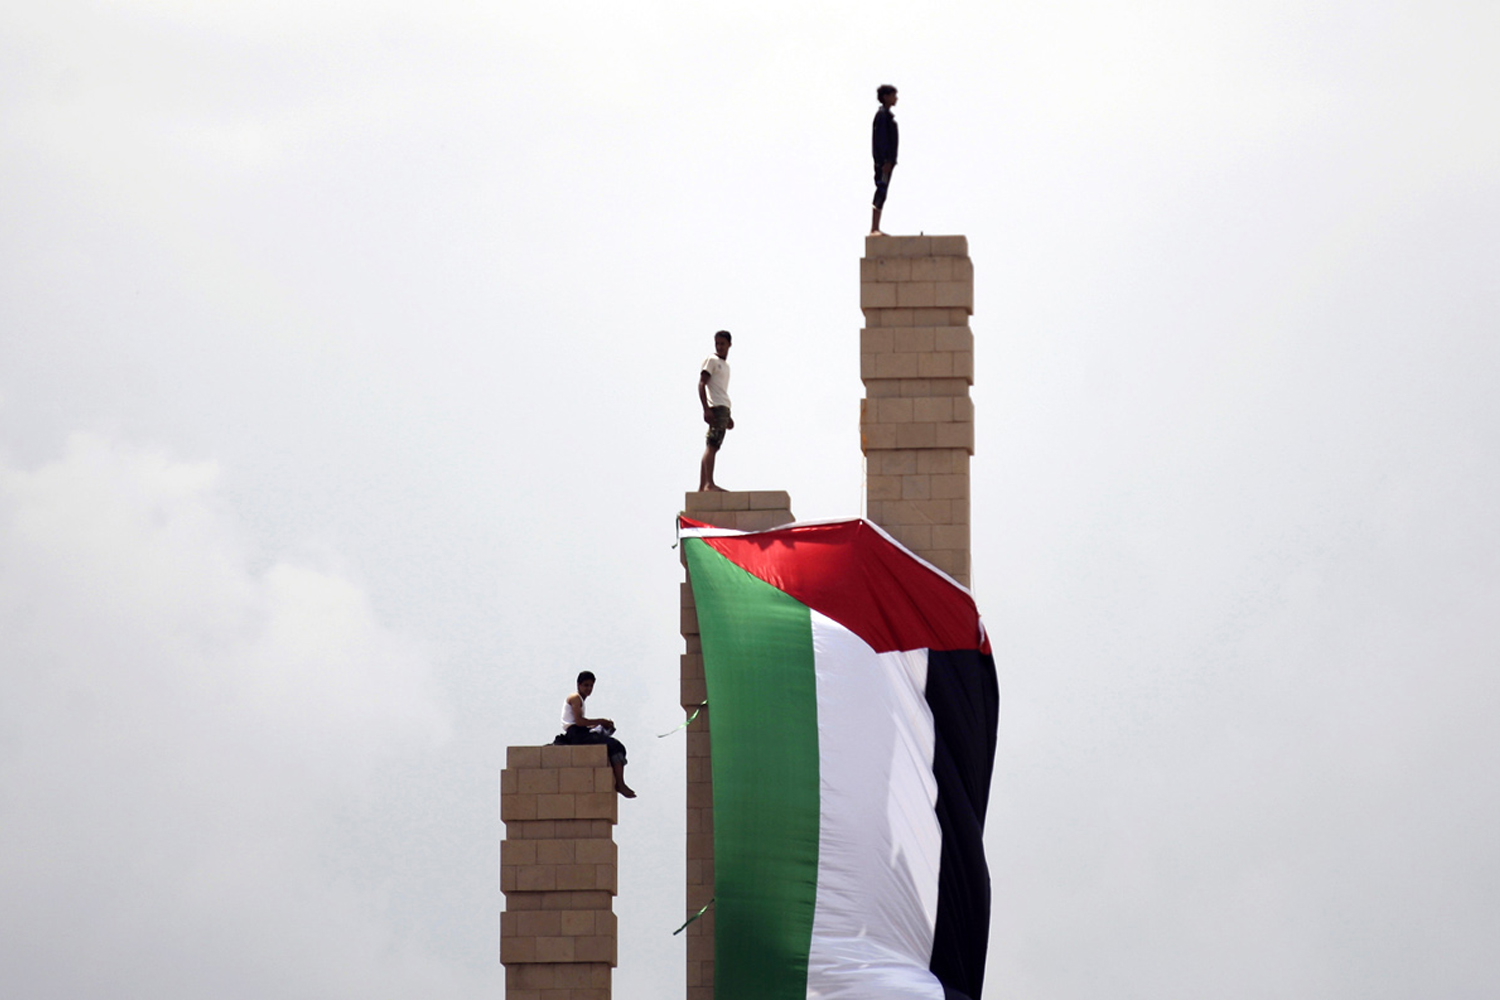 September 23, 2011. Supporters of Yemen's President Ali Abduallah Saleh gather at the Monument of the Unknown Soldier where a Palestinian flag hangs during a rally celebrating his return to Sanaa, Yemen. President Ali Abdullah Saleh made a surprise return to Yemen after more than three months of medical treatment in Saudi Arabia in a move certain to further inflame battles between forces loyal to him and his opponents that have turned the capital into a war zone.